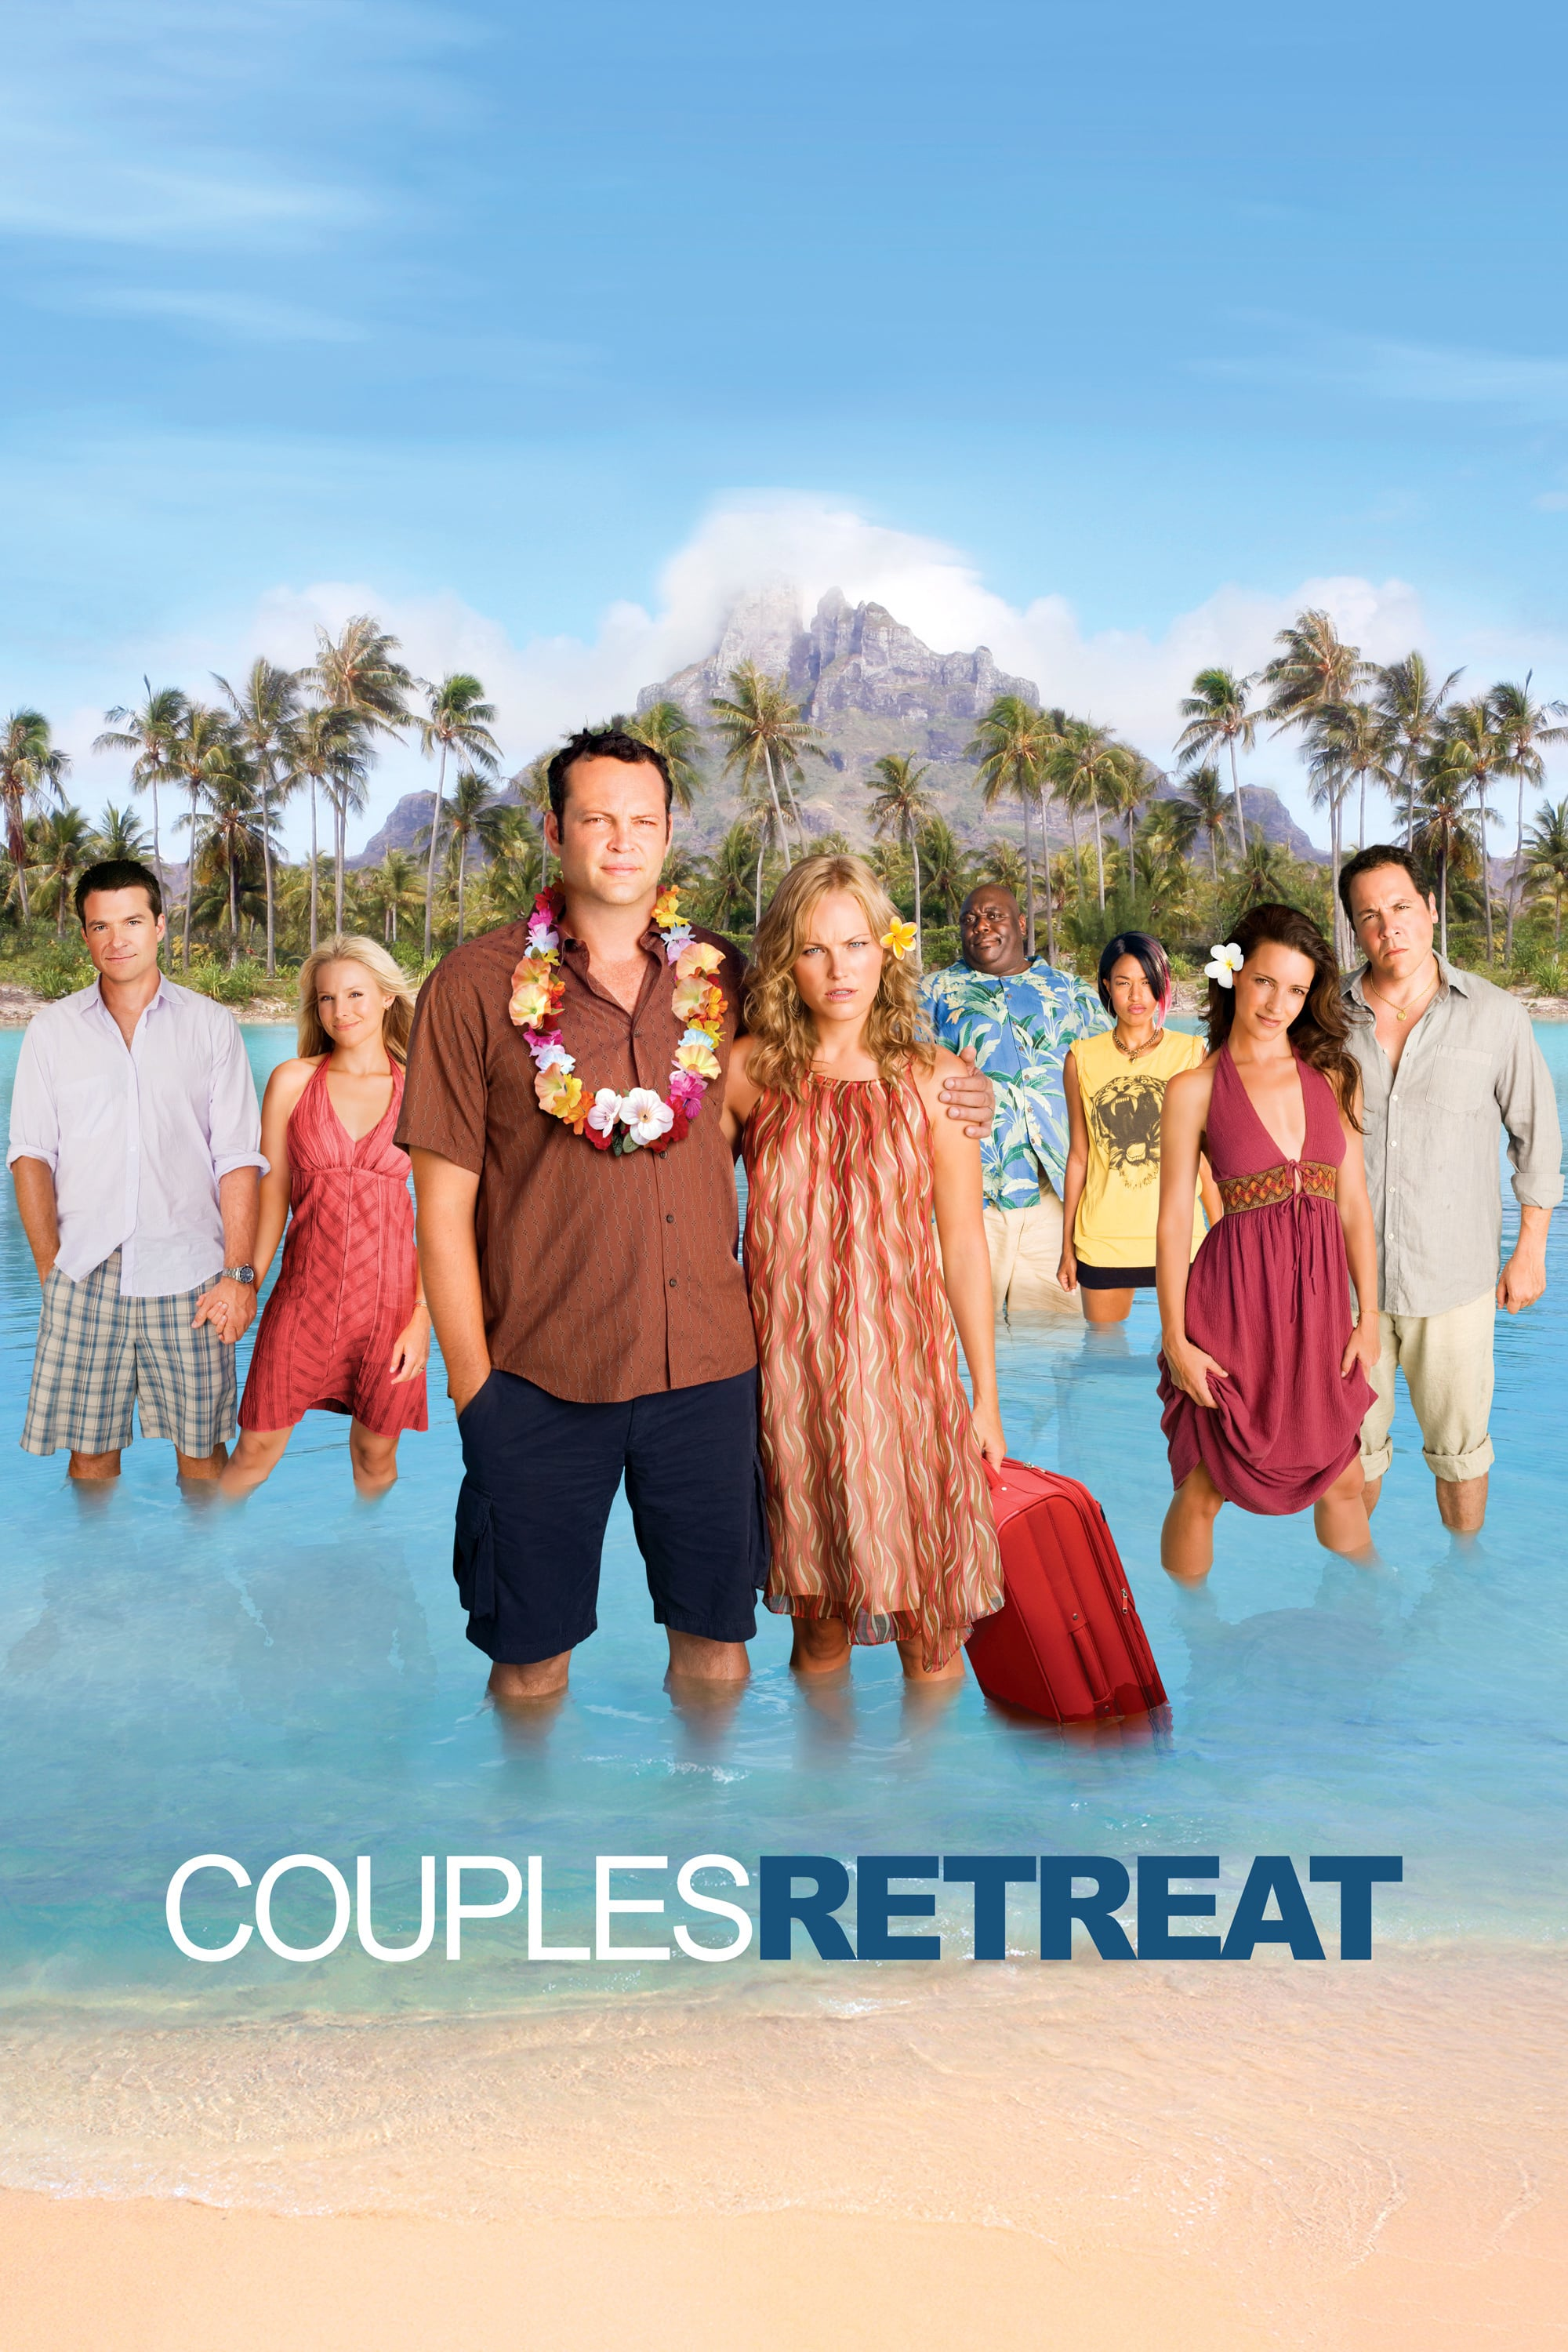 Caratula de COUPLES RETREAT (TODO INCLUIDO)